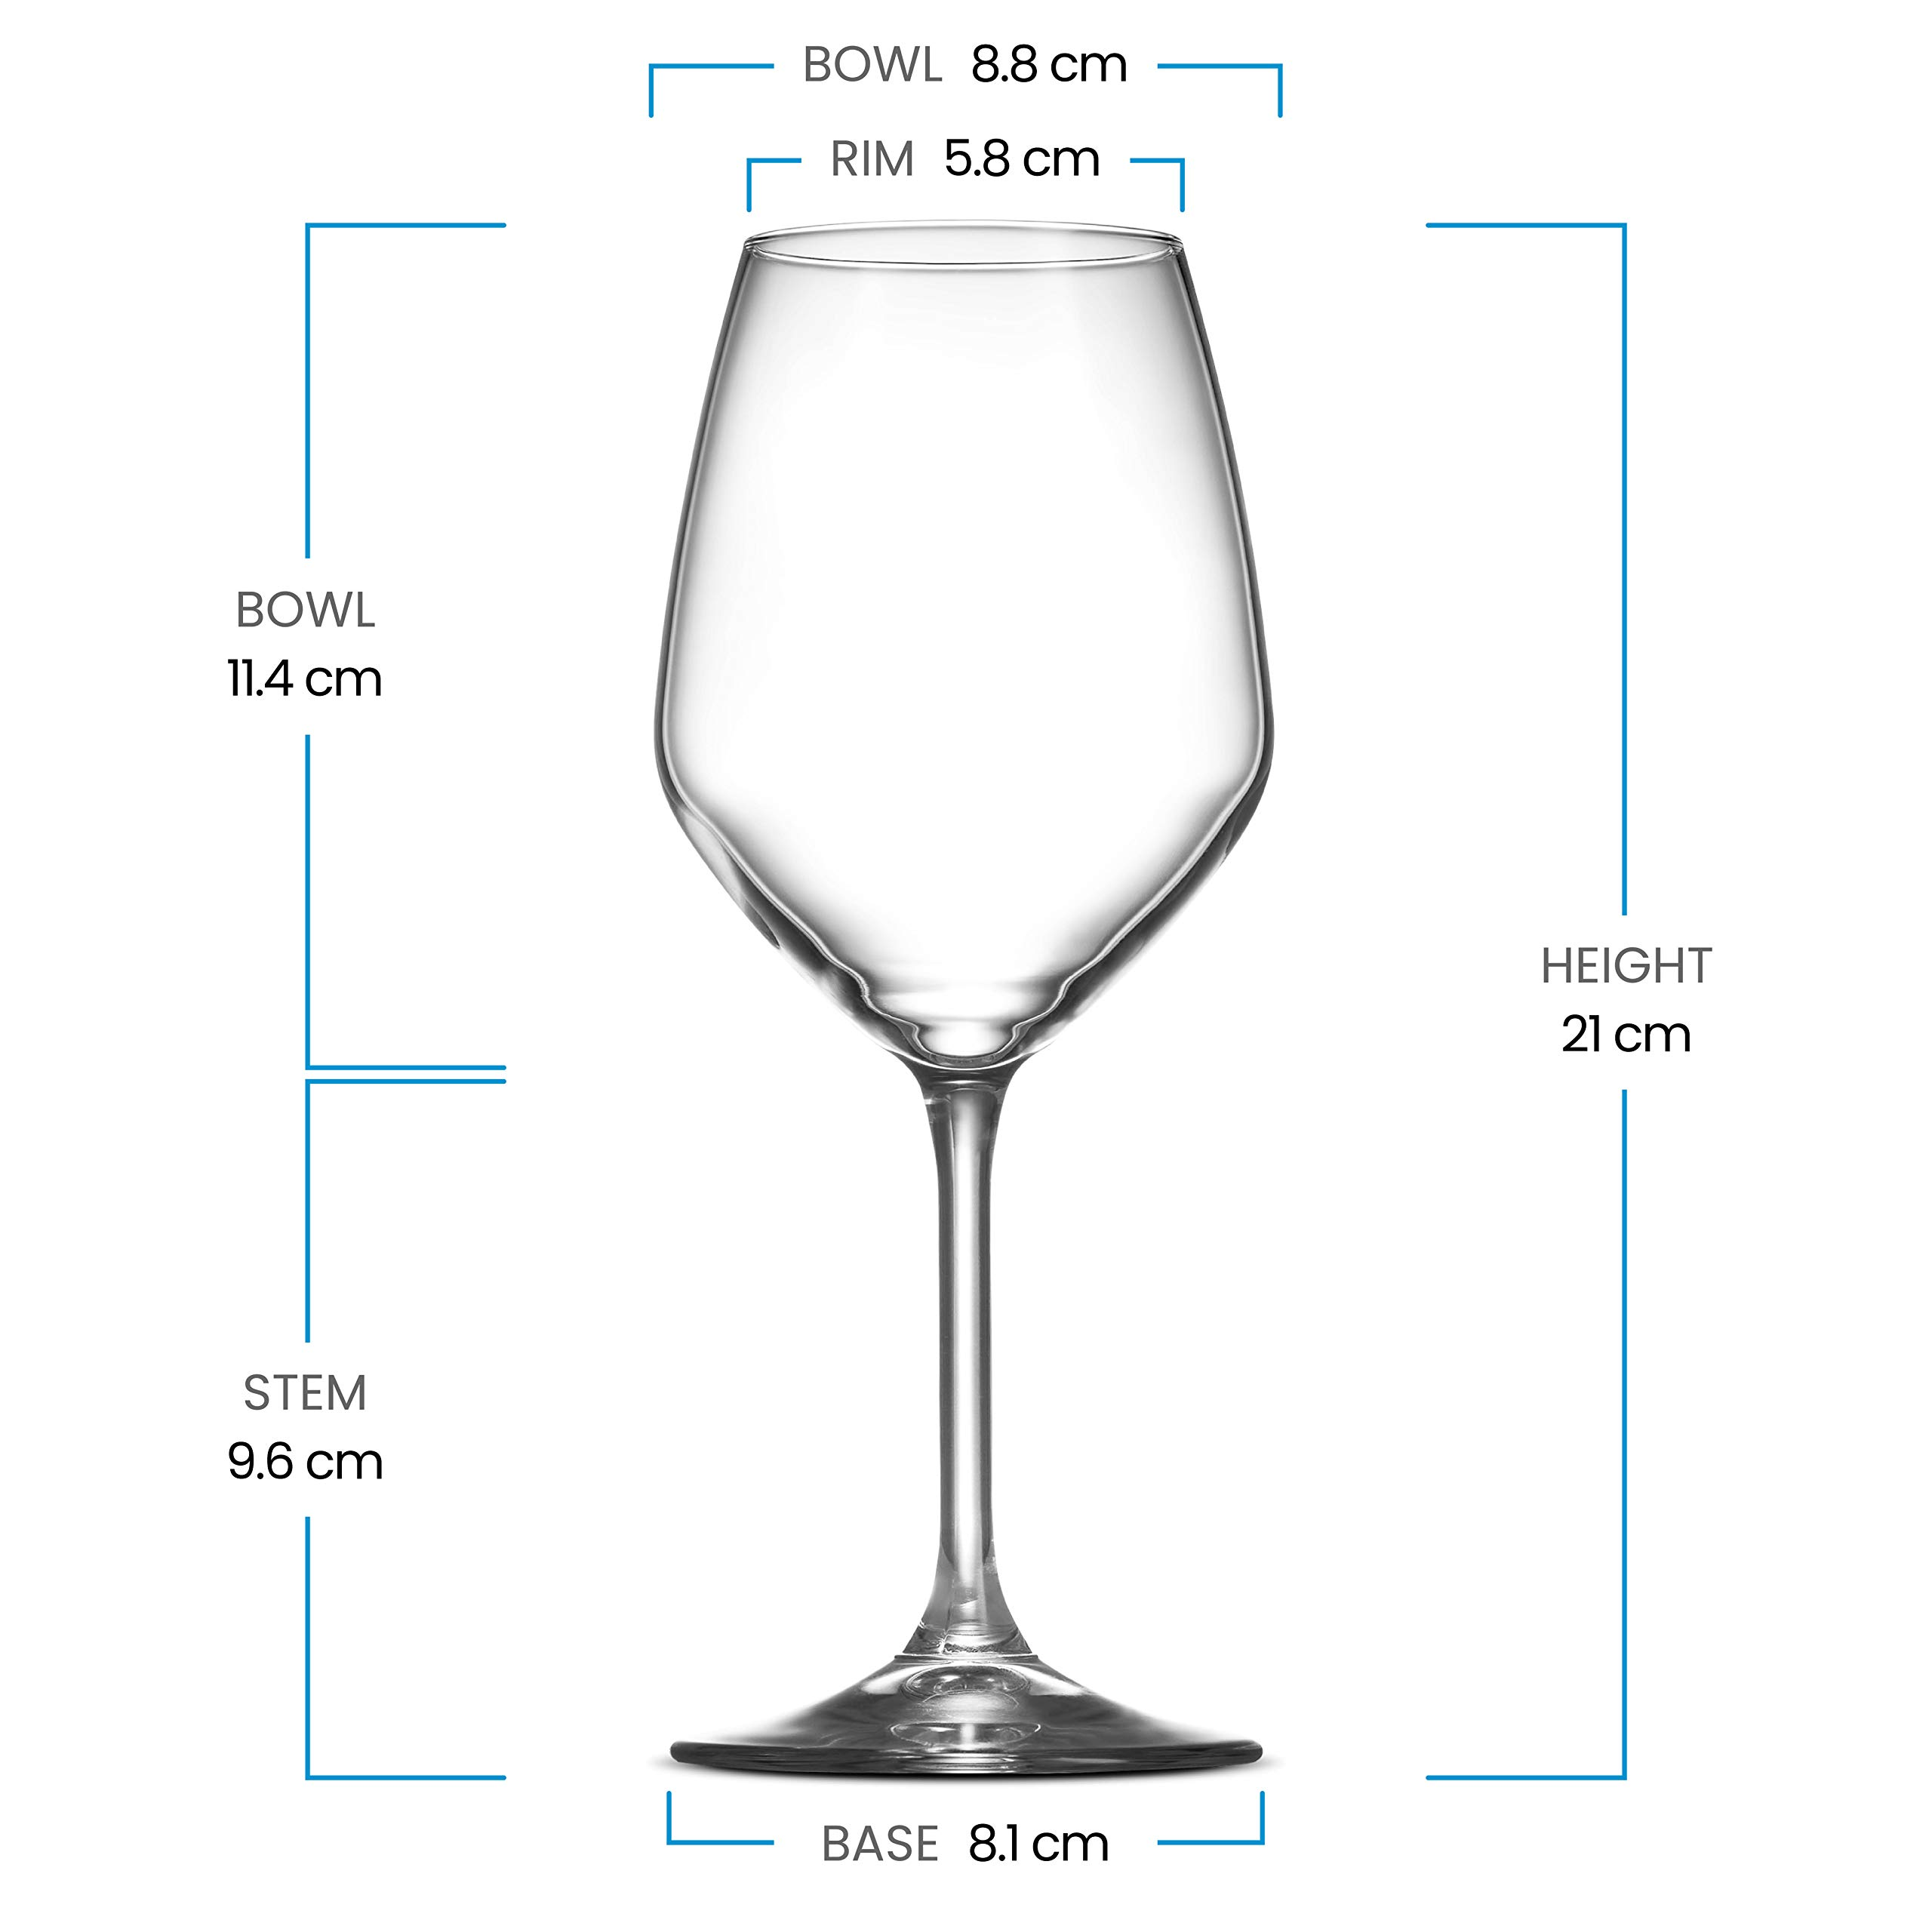 Paksh Novelty Italian White Wine Glasses - 15 Ounce - Lead Free - Shatter Resistant - Wine Glass, Clear (Set of 8) by Paksh Novelty (Image #7)